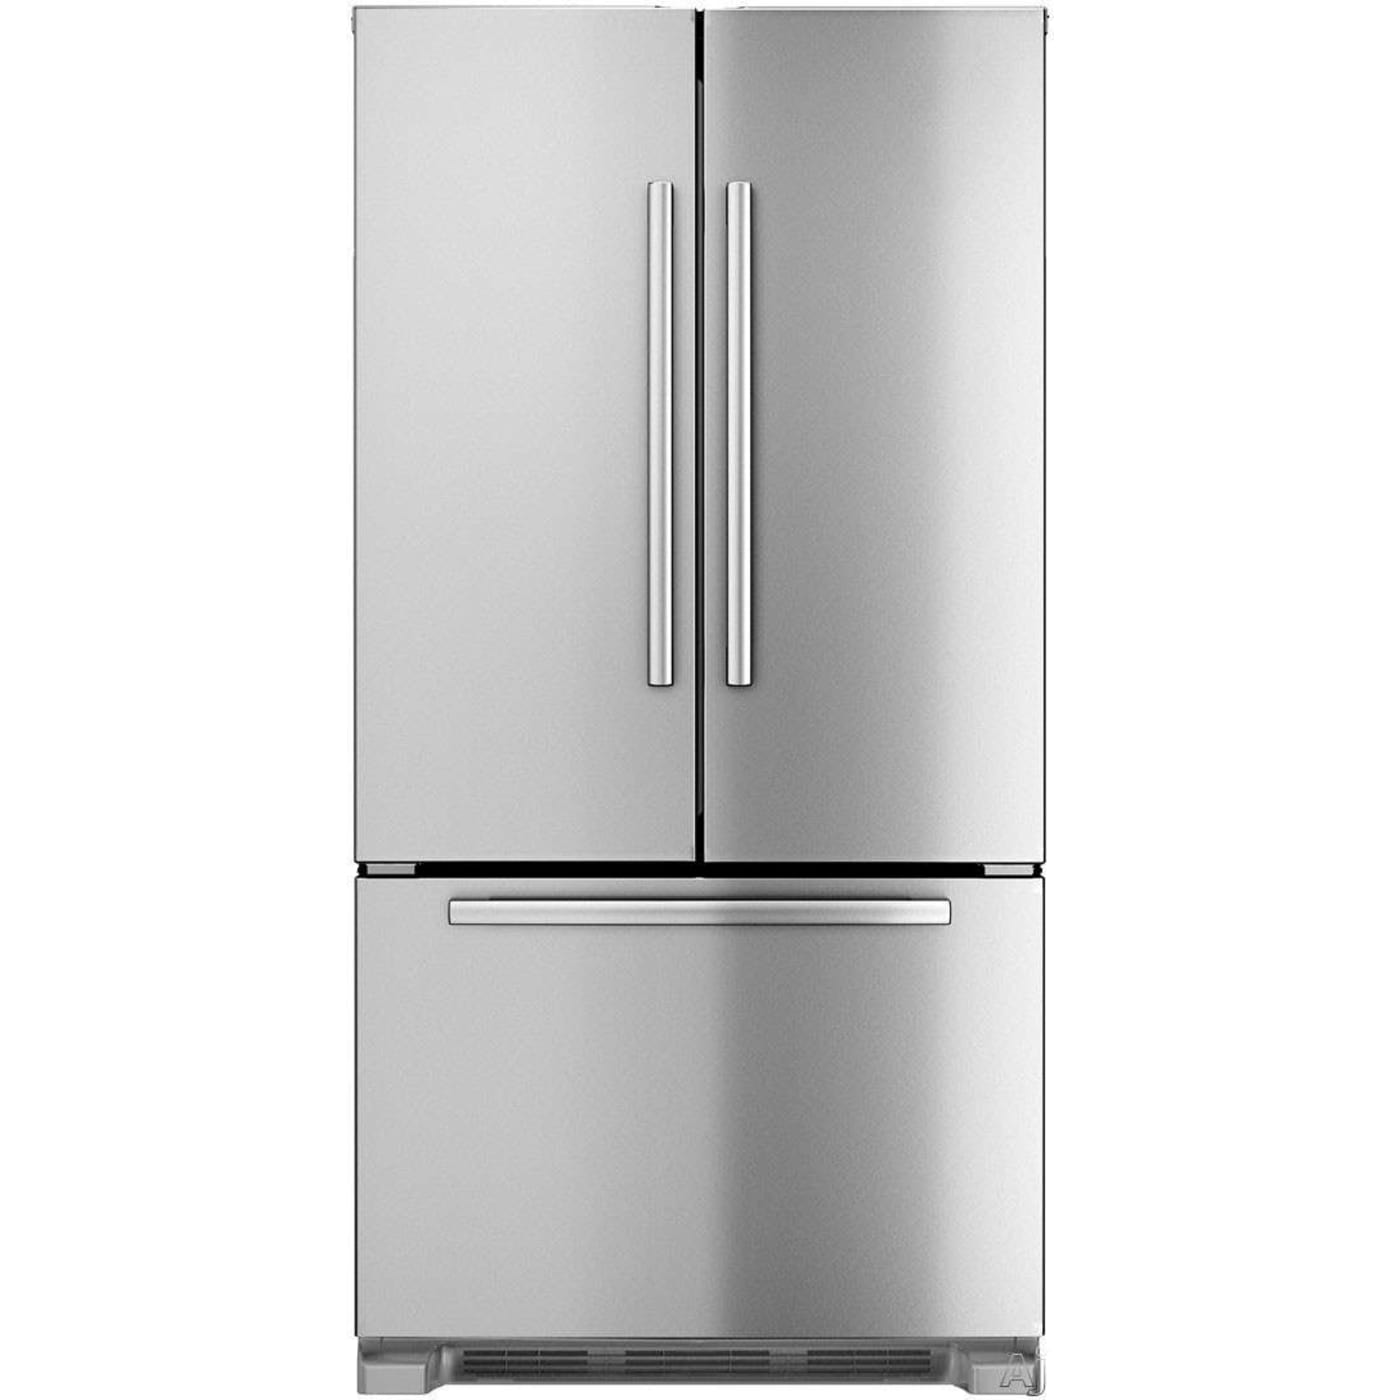 bosch b22ct80sns 800 series 21 8 cu ft stainless steel counter depth french door refrigerator. Black Bedroom Furniture Sets. Home Design Ideas